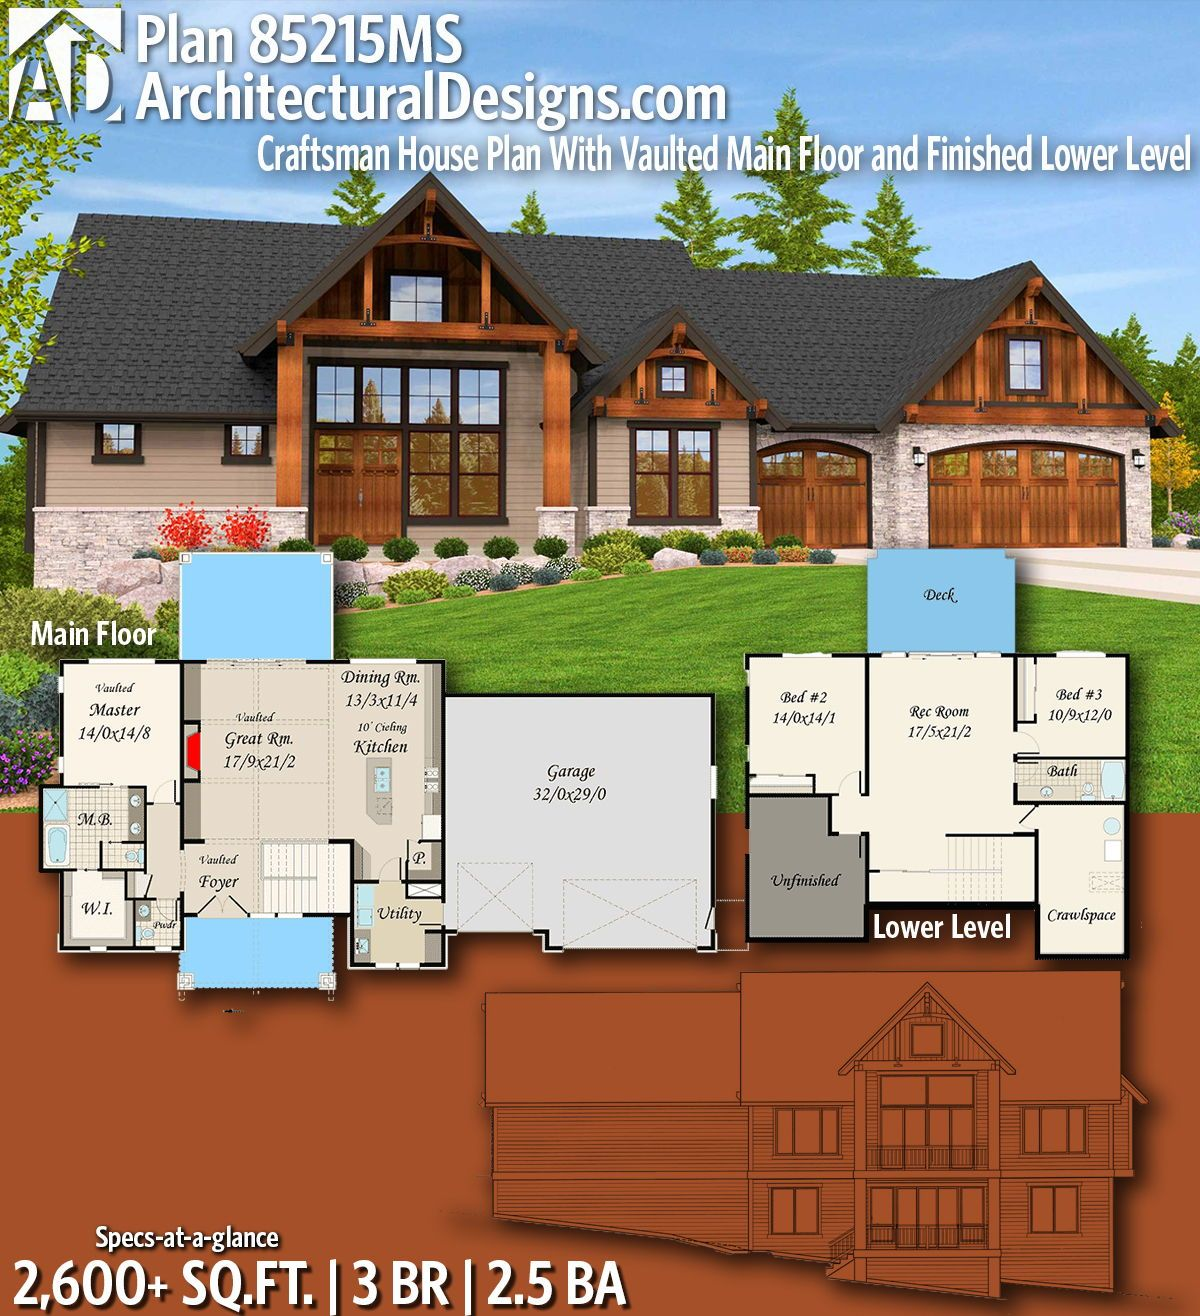 Plan 14632rk Rugged Craftsman With Room Over Garage: Plan 85215MS: Craftsman House Plan With Vaulted Main Floor